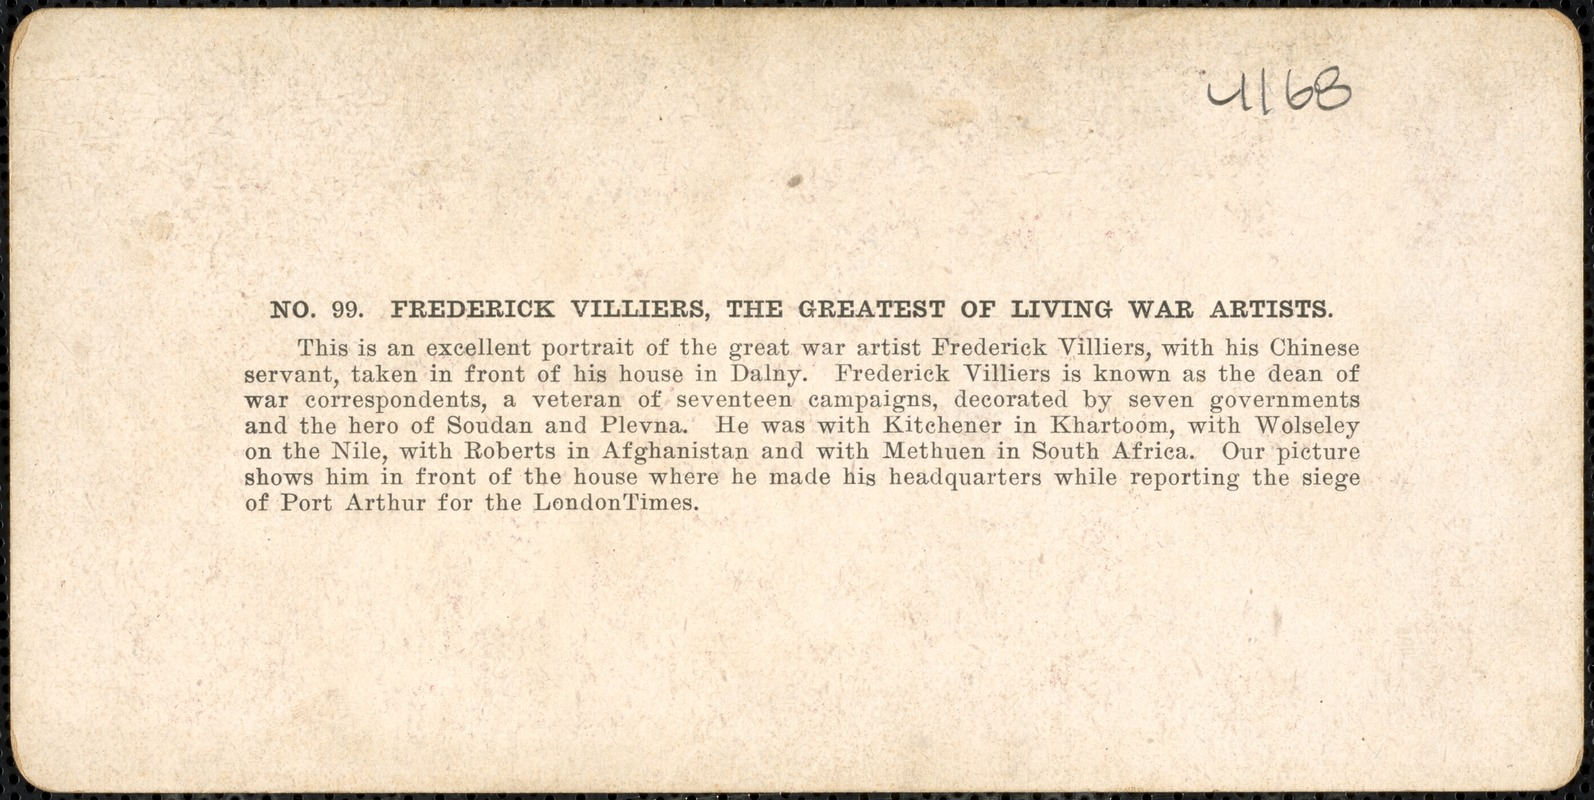 Frederick Villiers, the greatest of living war artists